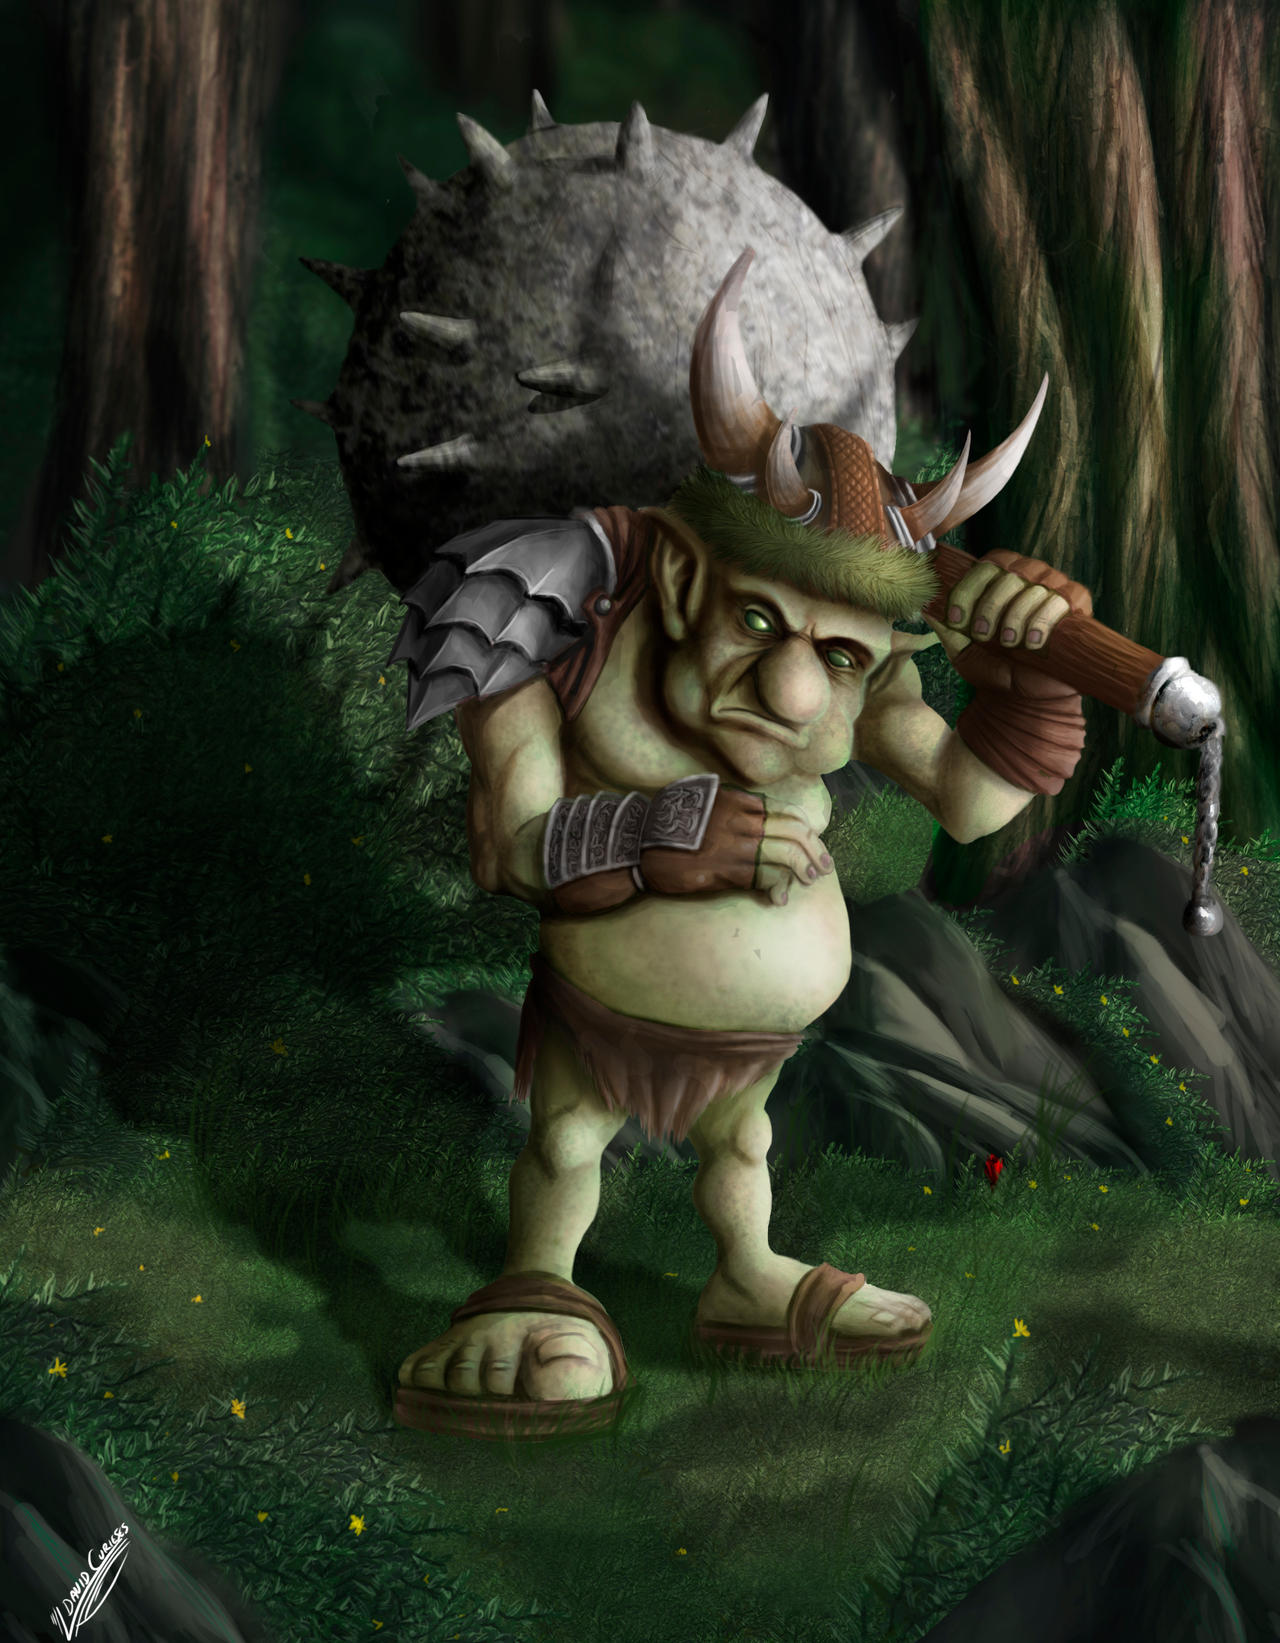 http://fc06.deviantart.net/fs71/i/2011/164/3/9/troll_in_the_forest_by_curi222-d3isc9r.jpg